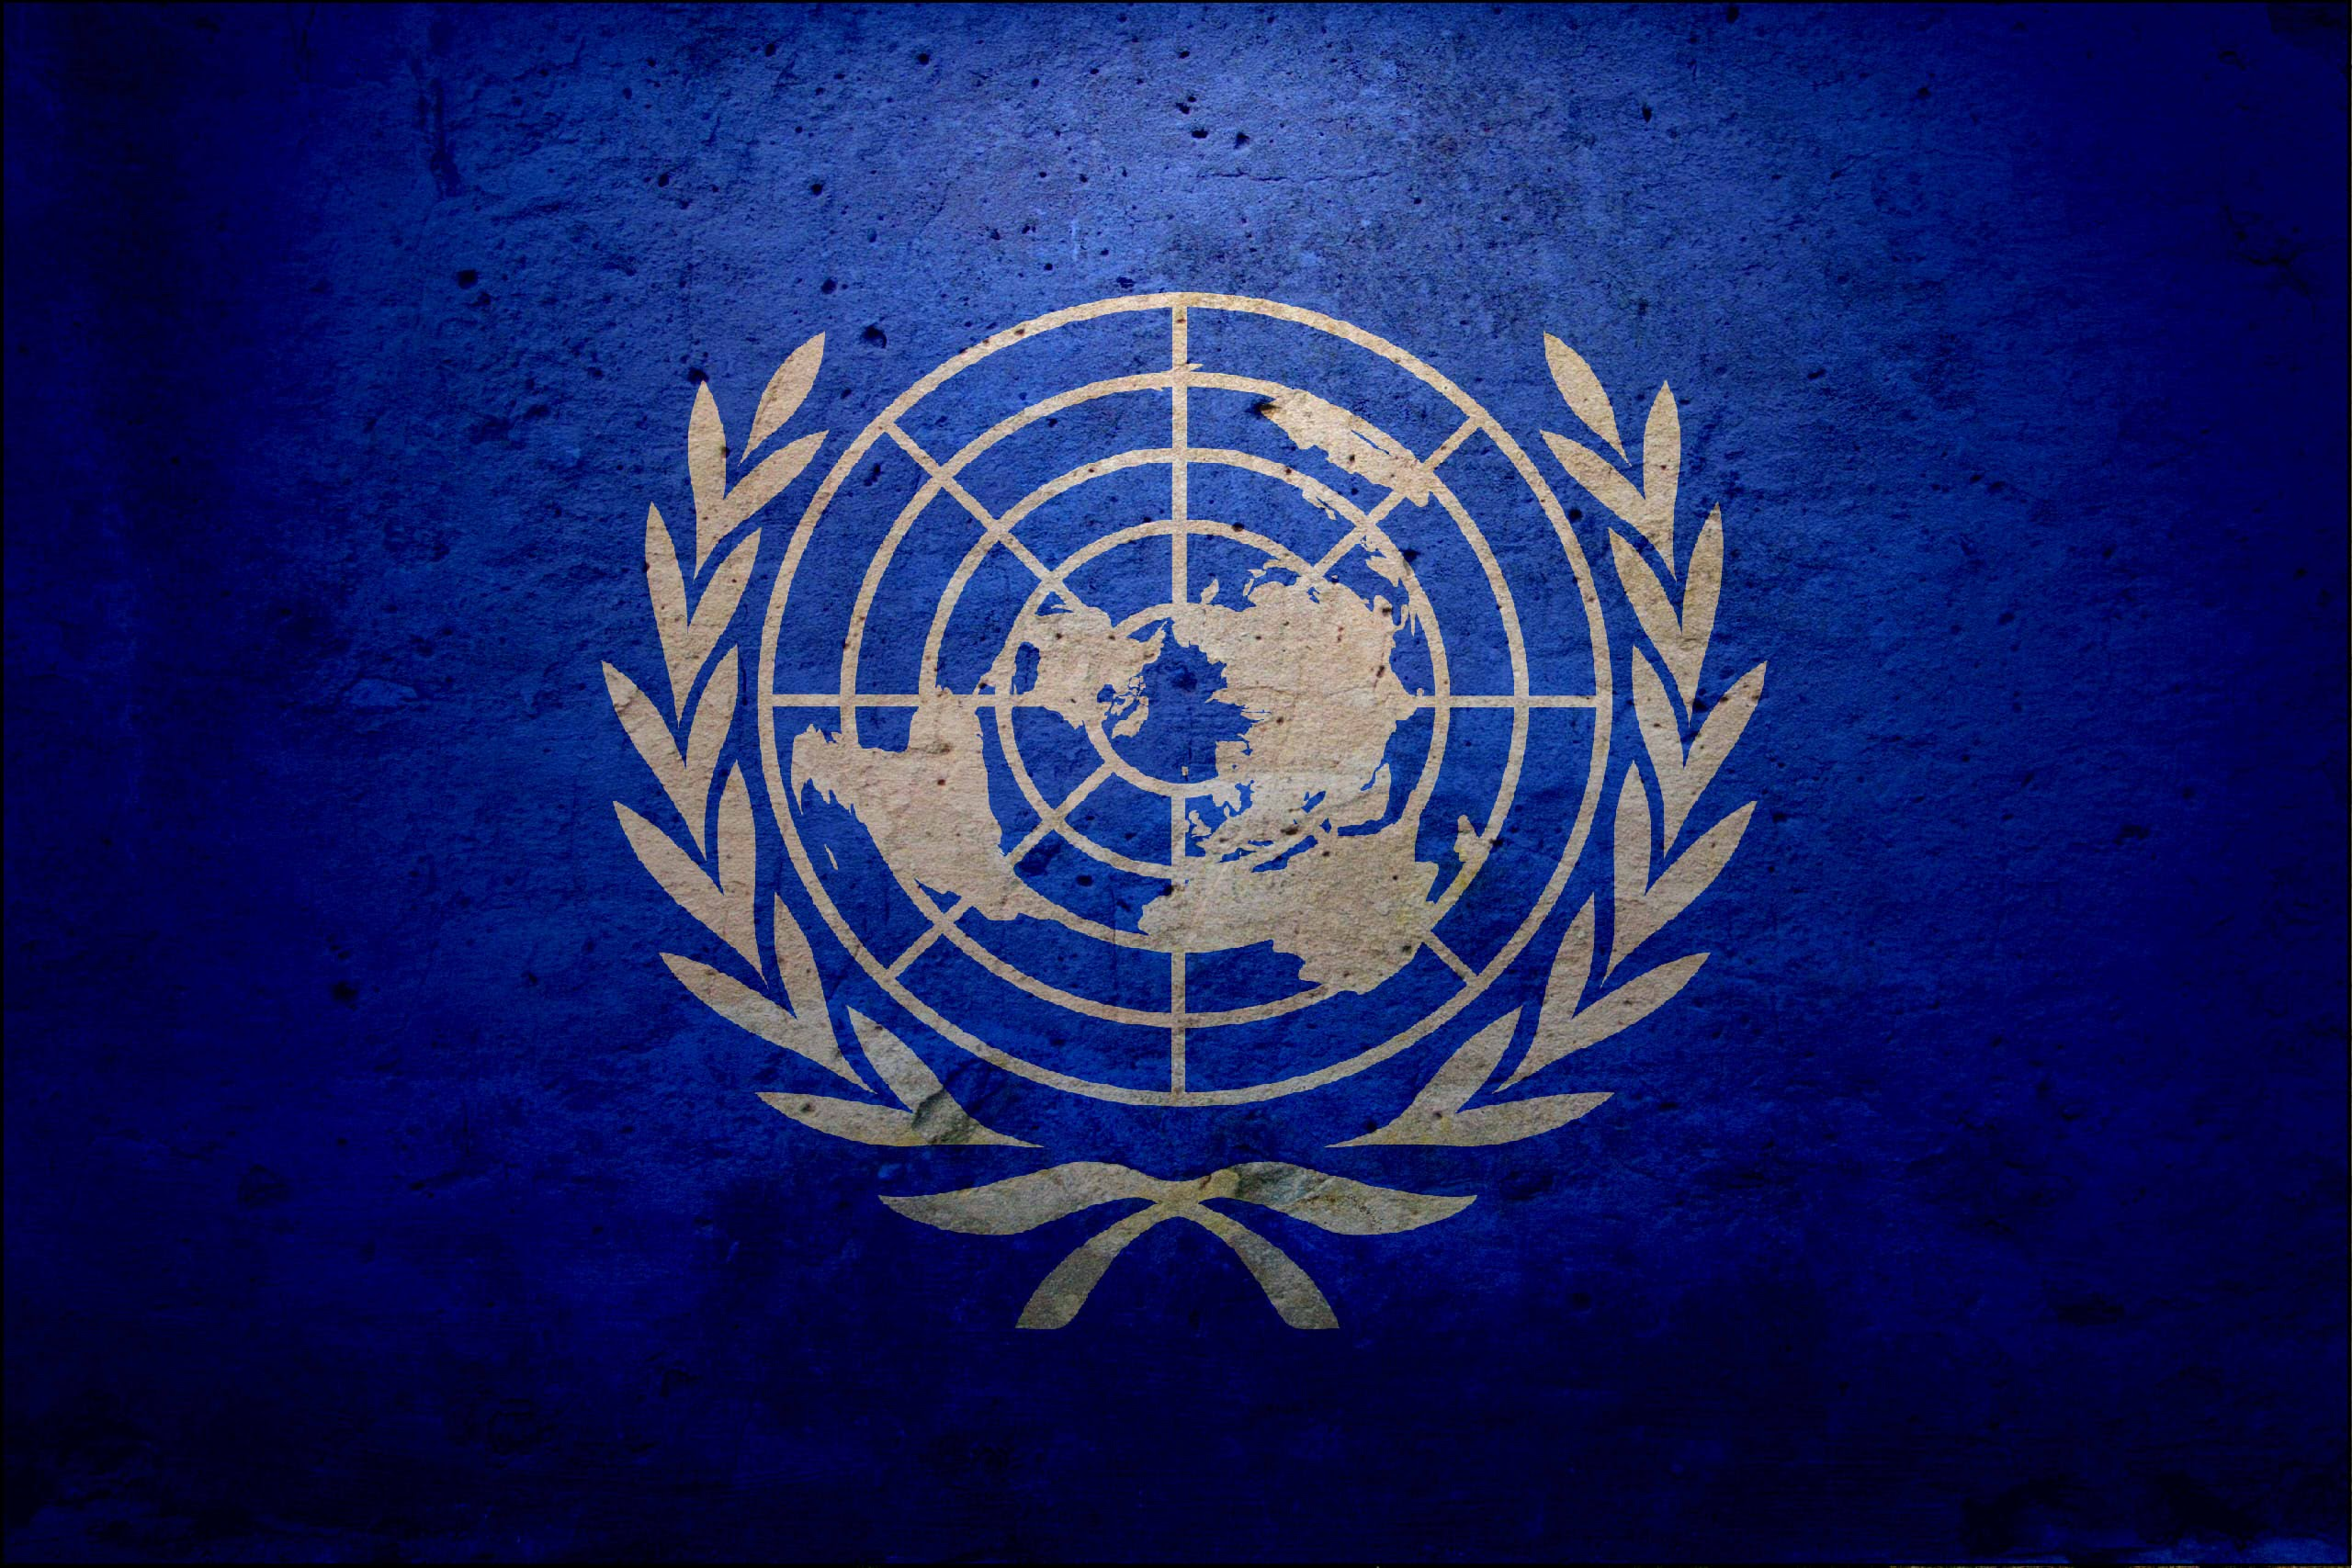 Flag Of The United Nations HD Wallpaper Background Image 2560x1707